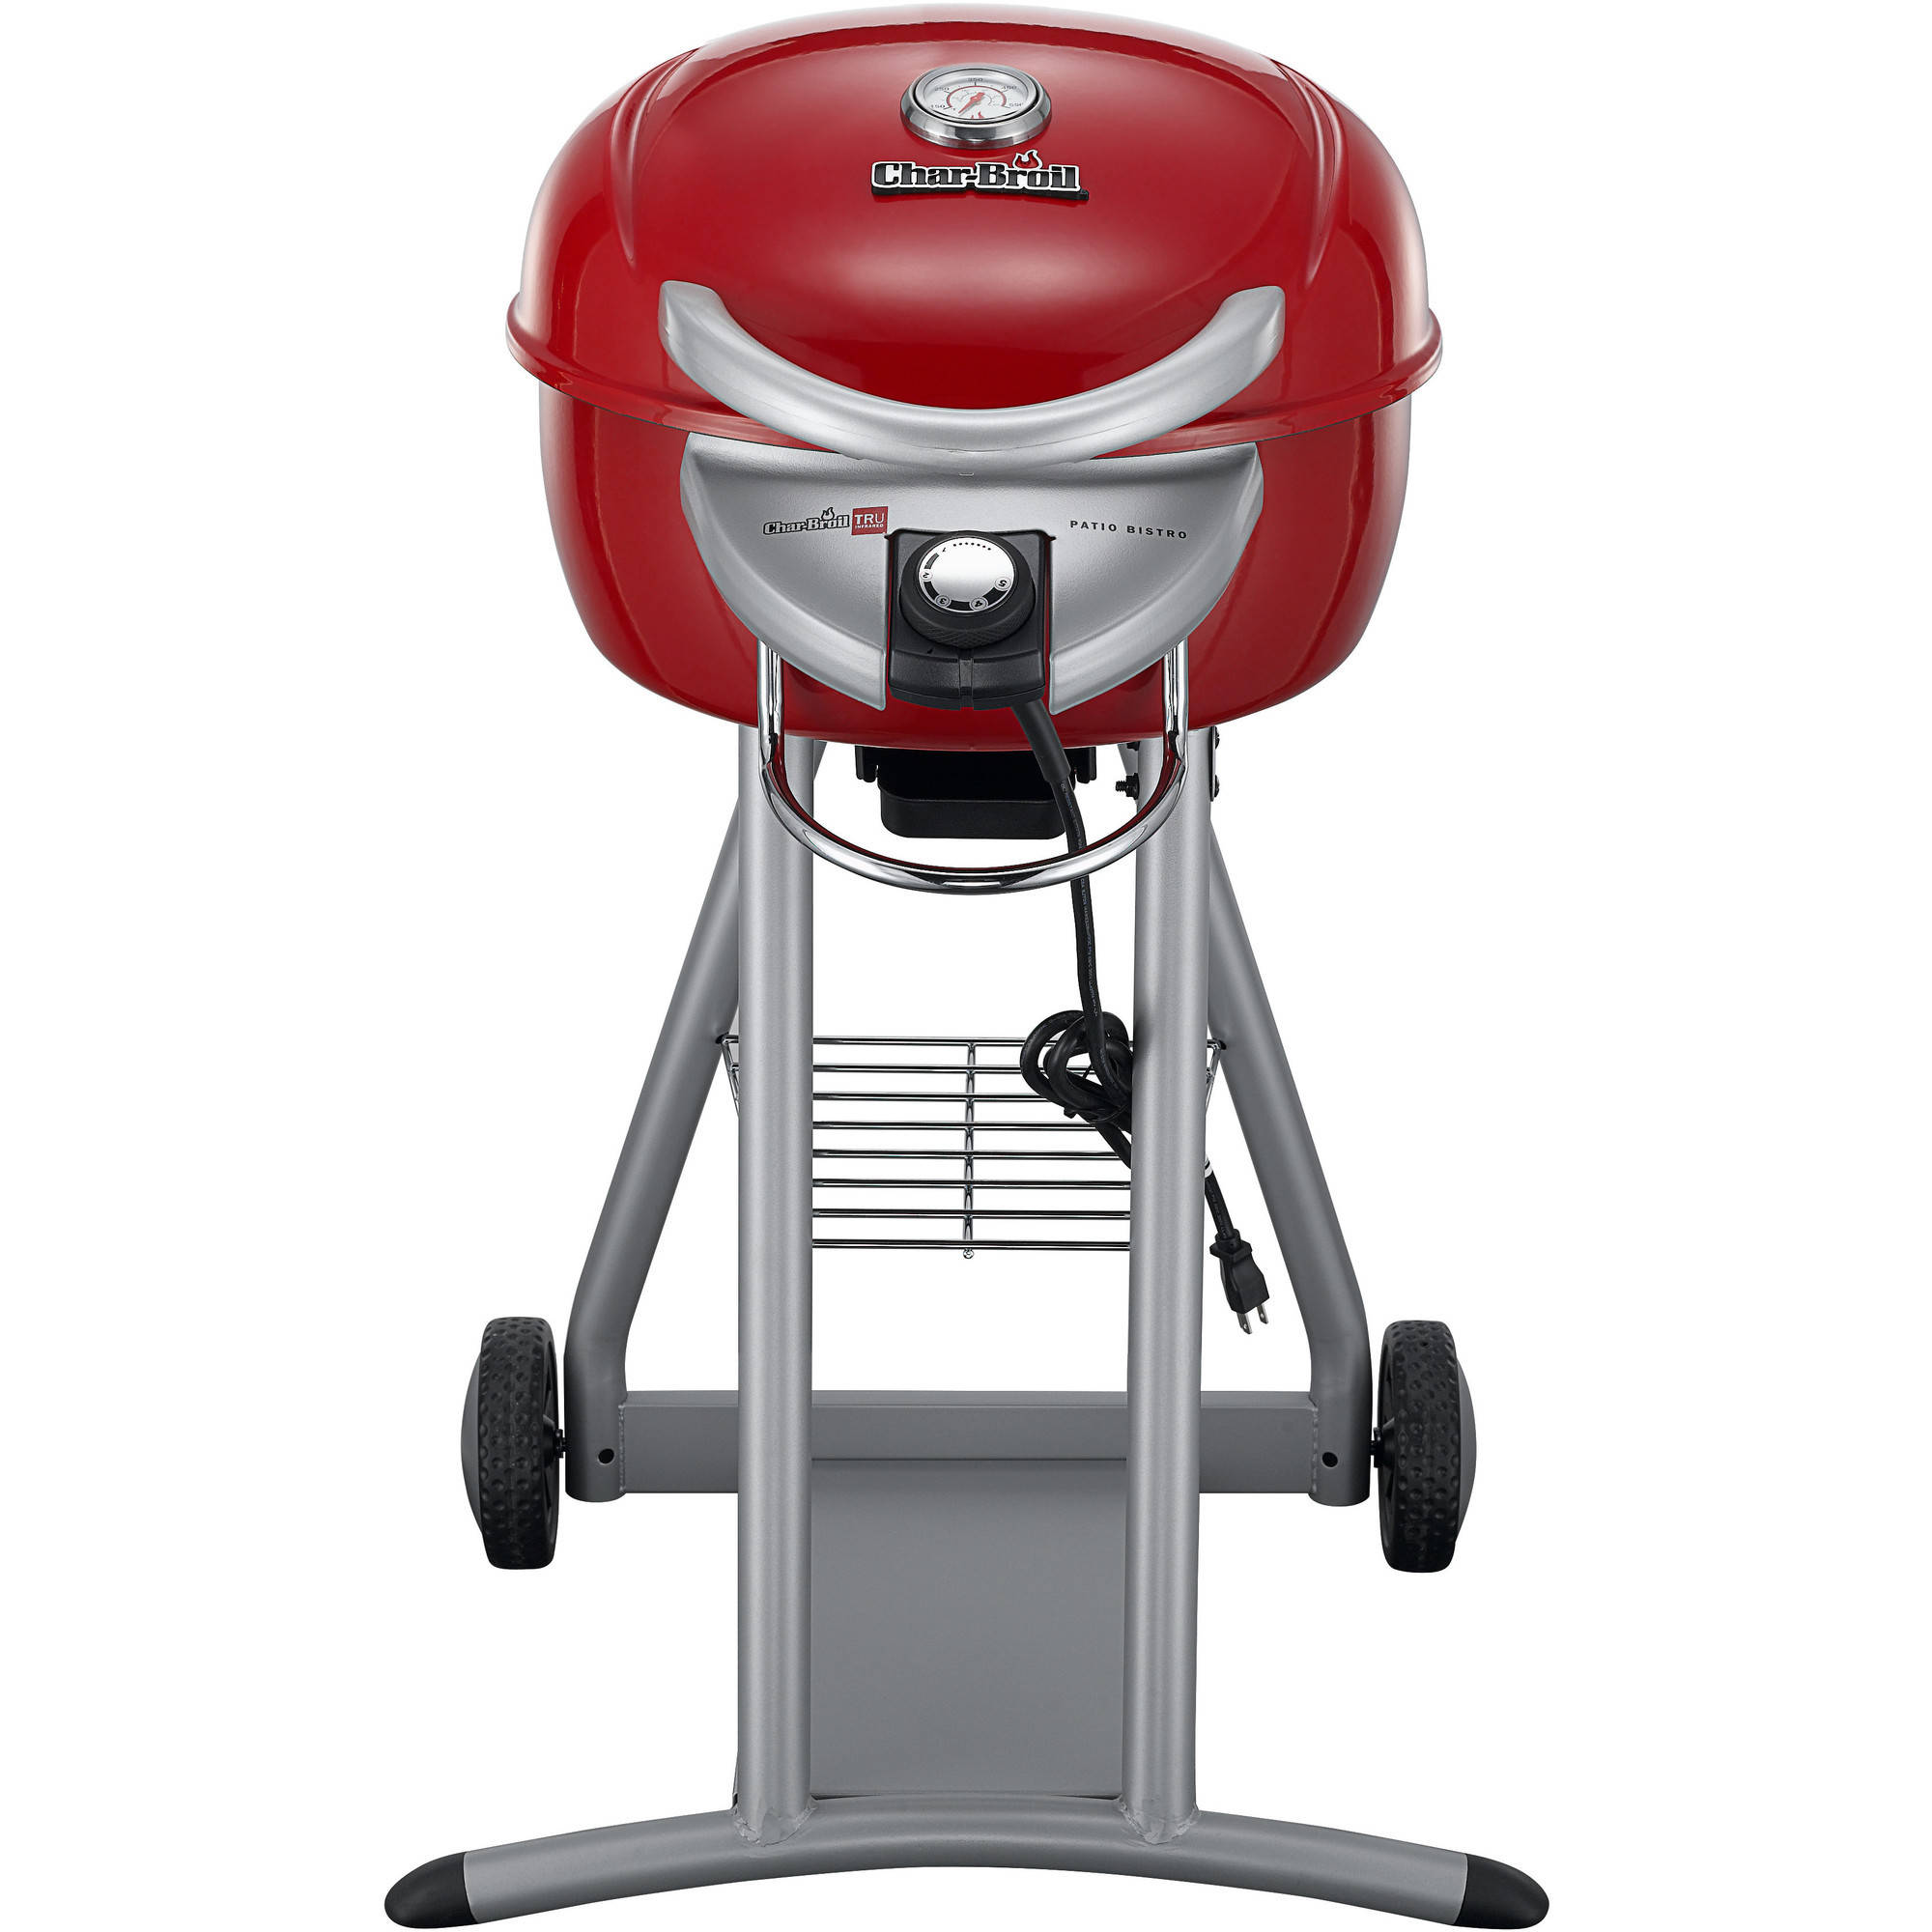 Char-Broil Patio Bistro Infrared 240-Square Inch Electric Grill, Red